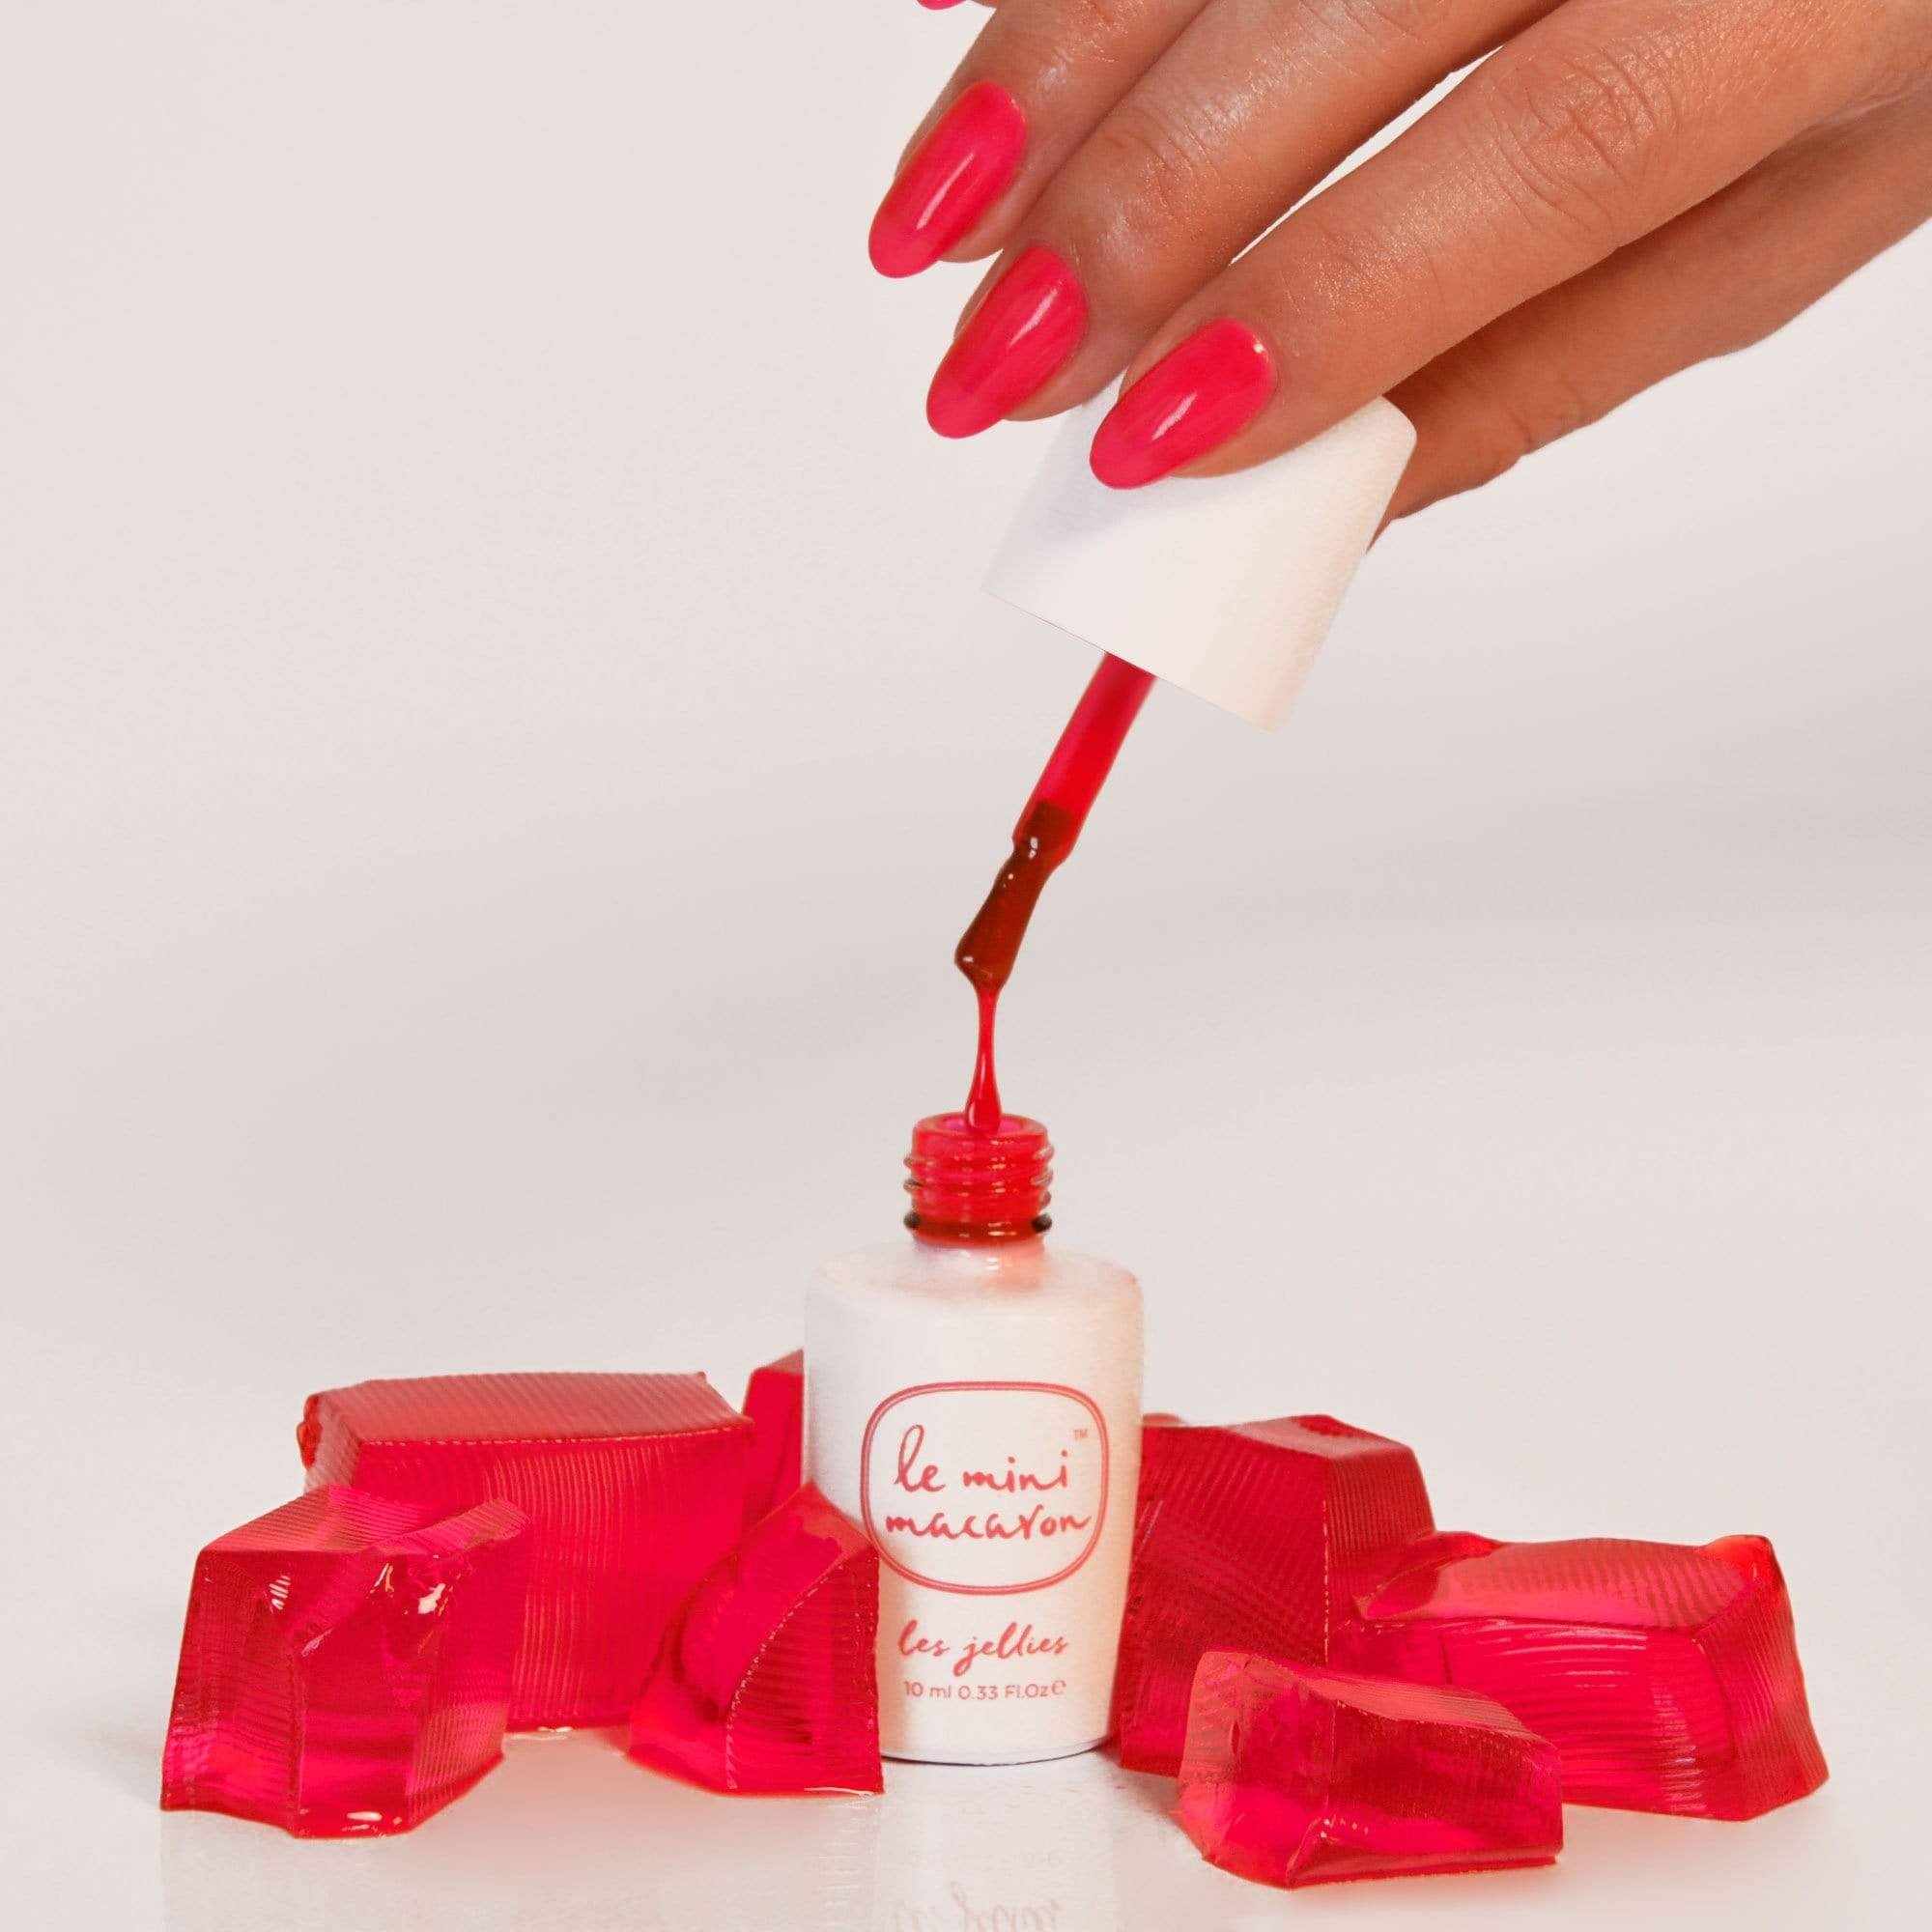 Strawberry Jelly Les Jellies Collection - Jelly Gel Polish - Le Mini Macaron